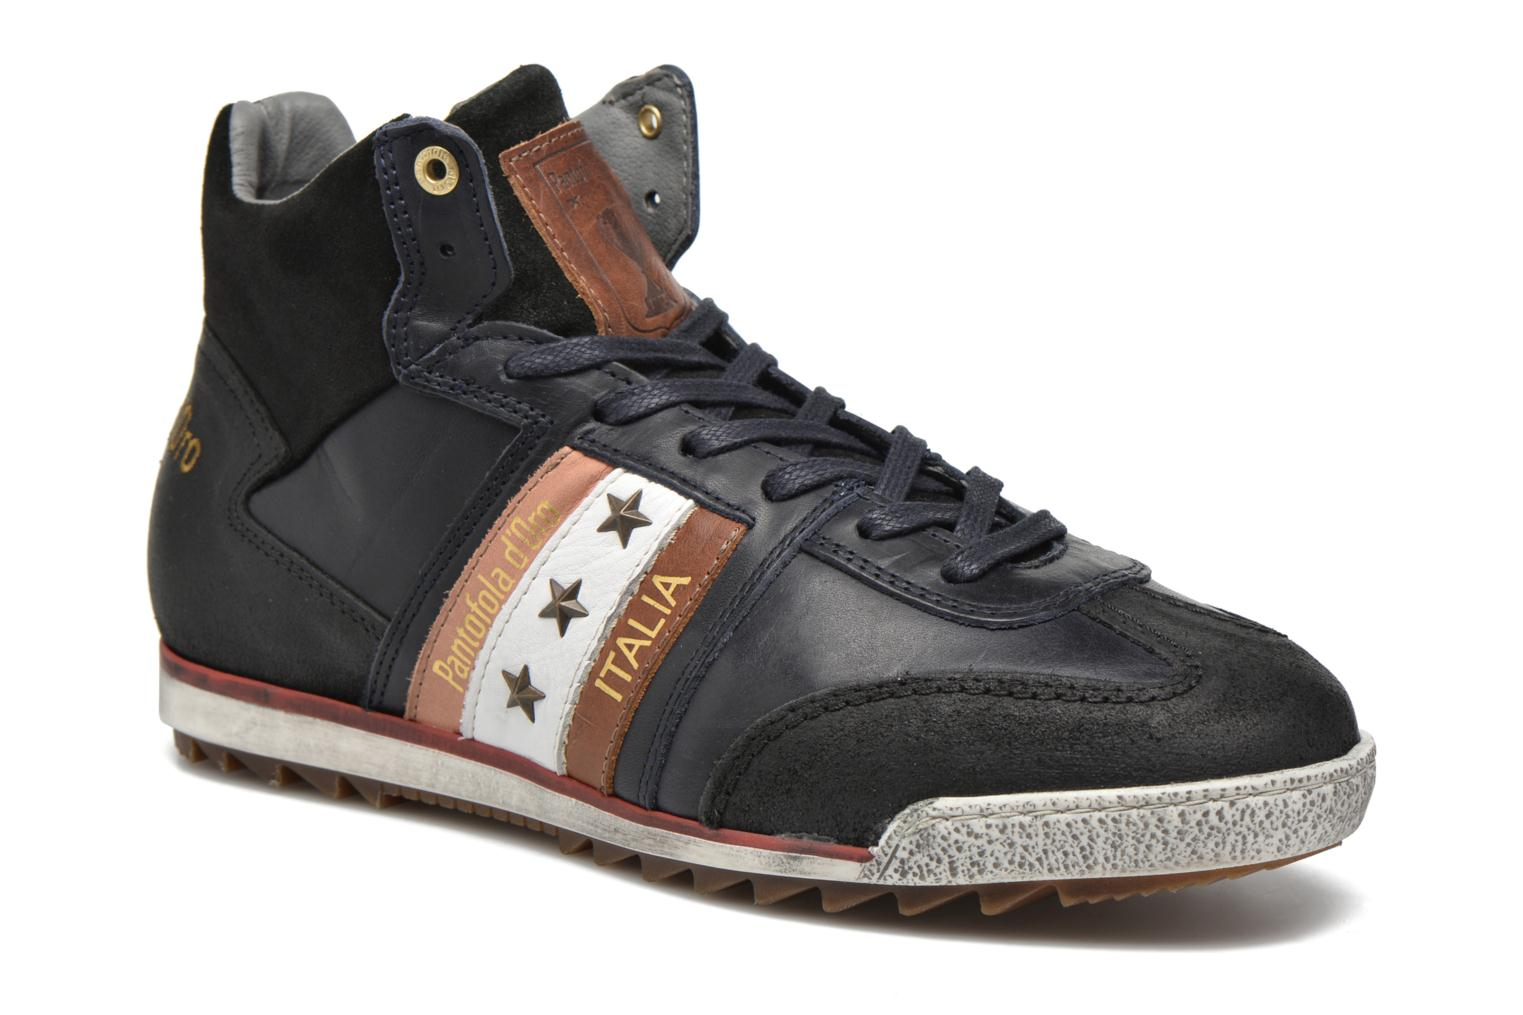 Sneakers Ascoli Grip Mid Men by Pantofola d'Oro